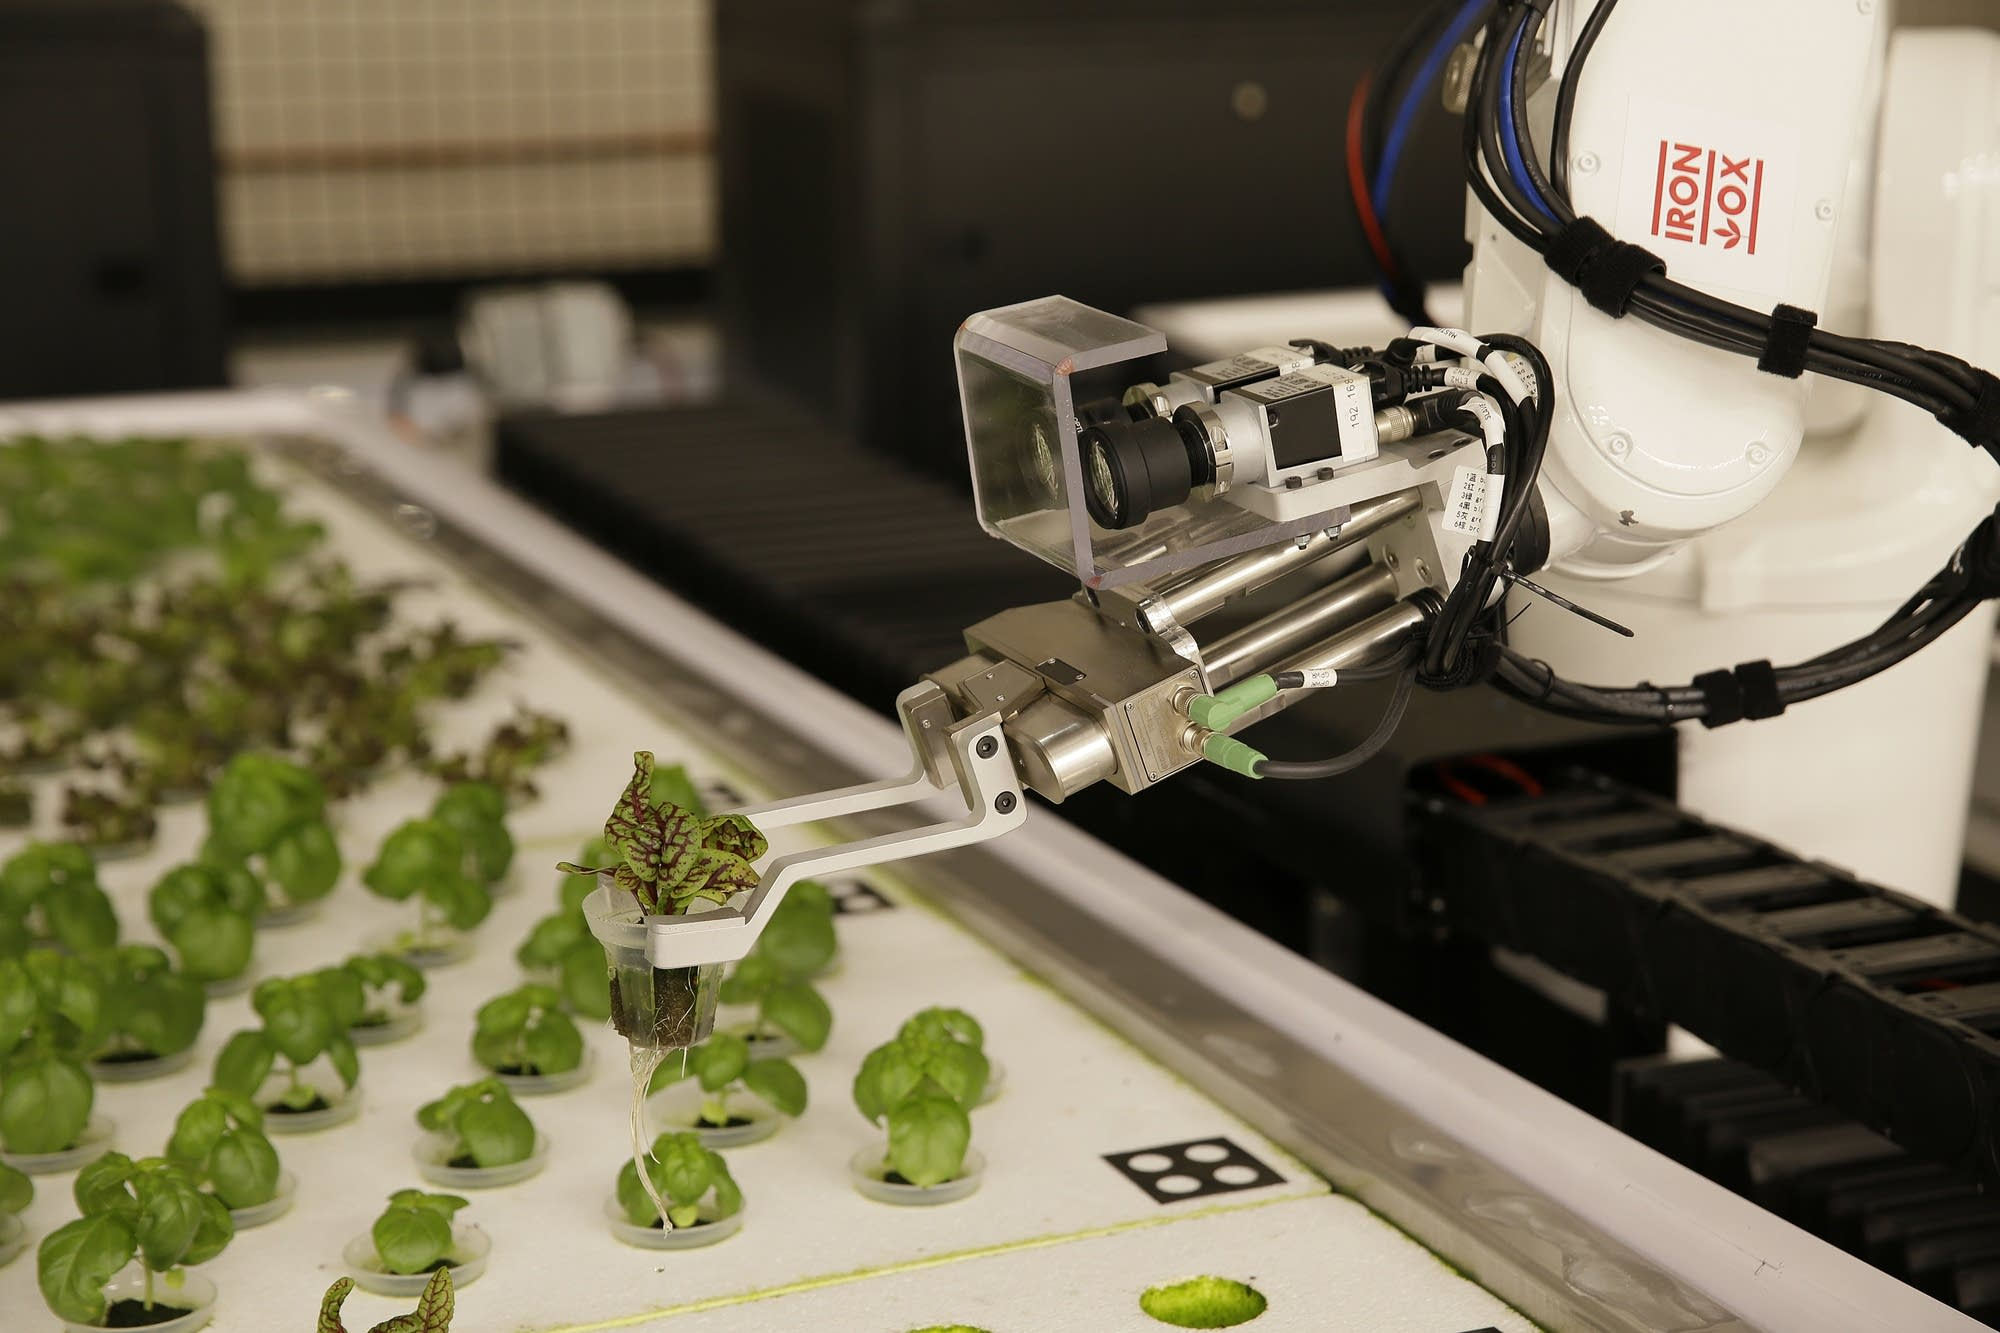 A robotic arm lifts plants being grown at Iron Ox.